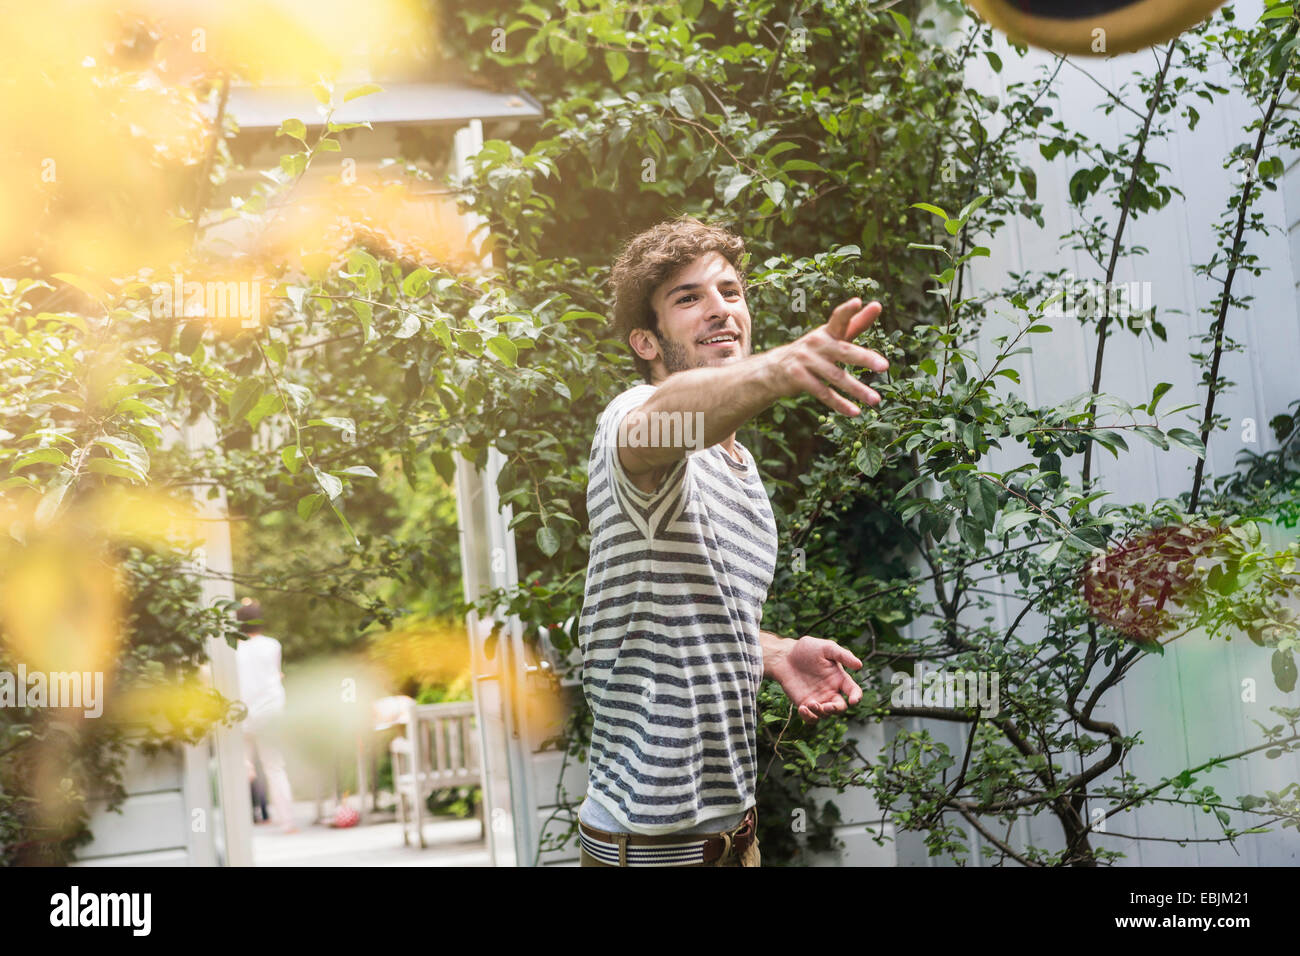 Young man throwing ball in garden - Stock Image